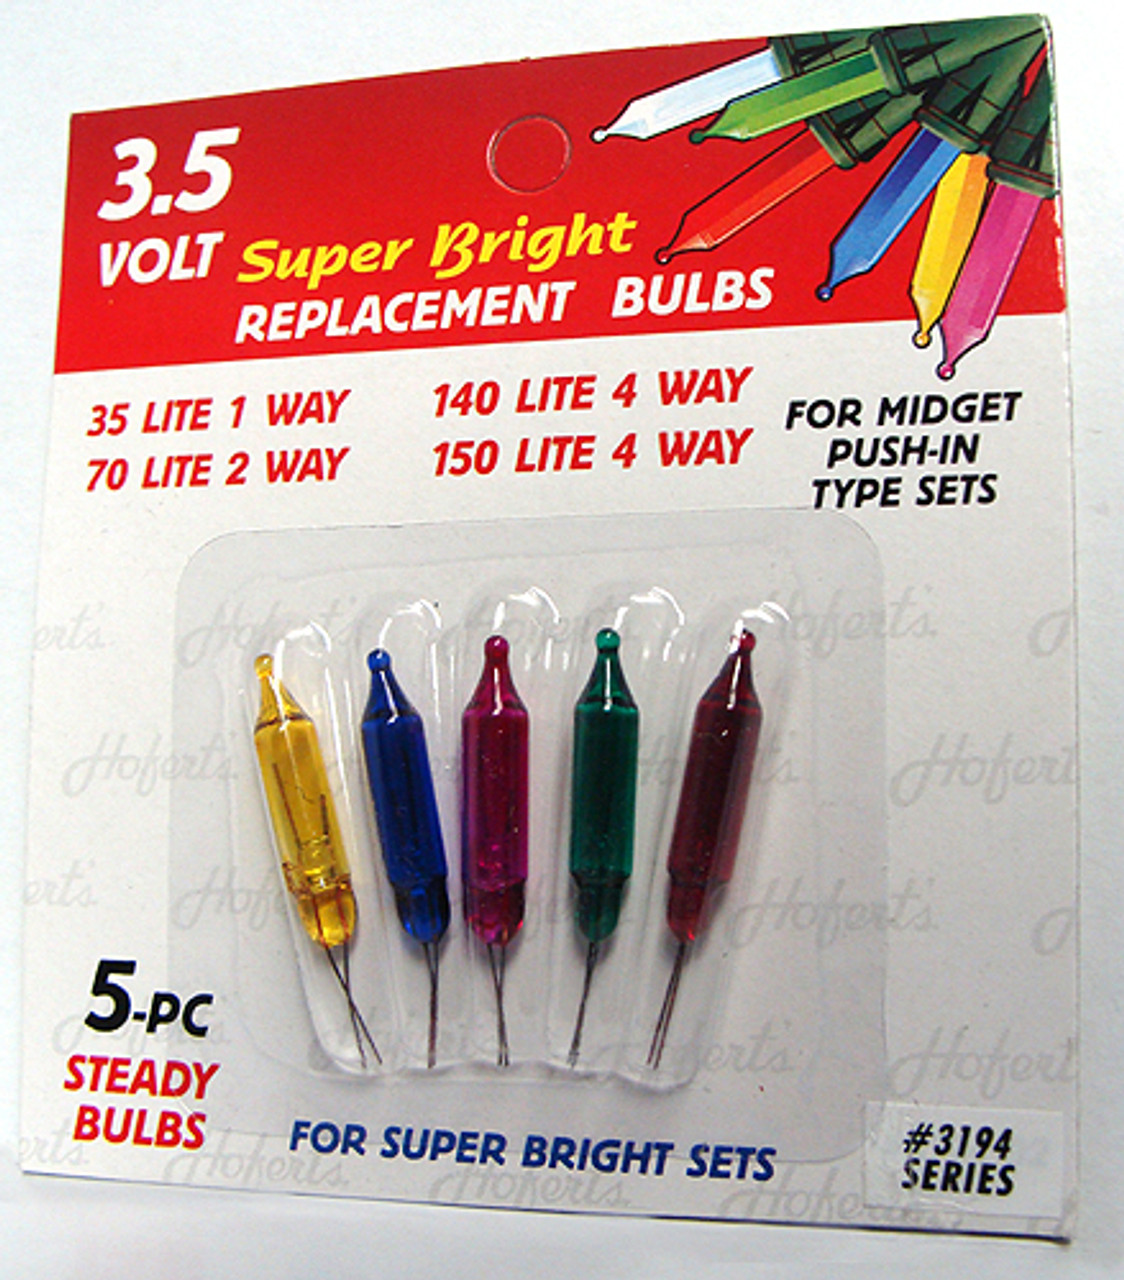 pack of 5 multi color push in mini replacement christmas light bulbs 35 volt 7608570